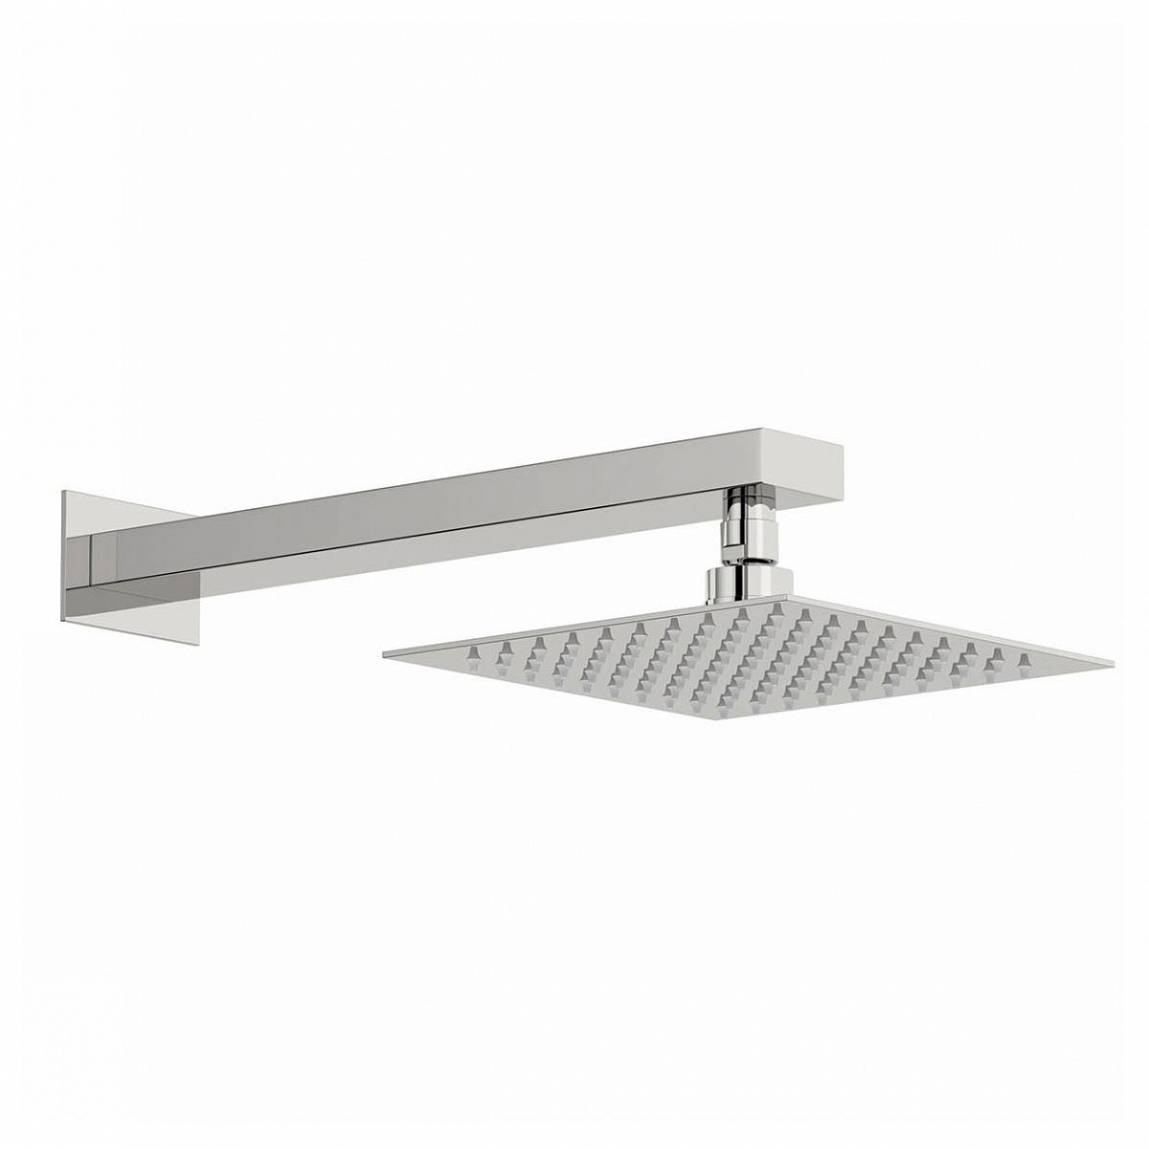 Image of Arcus 200mm Shower Head & Rectangular Wall Arm